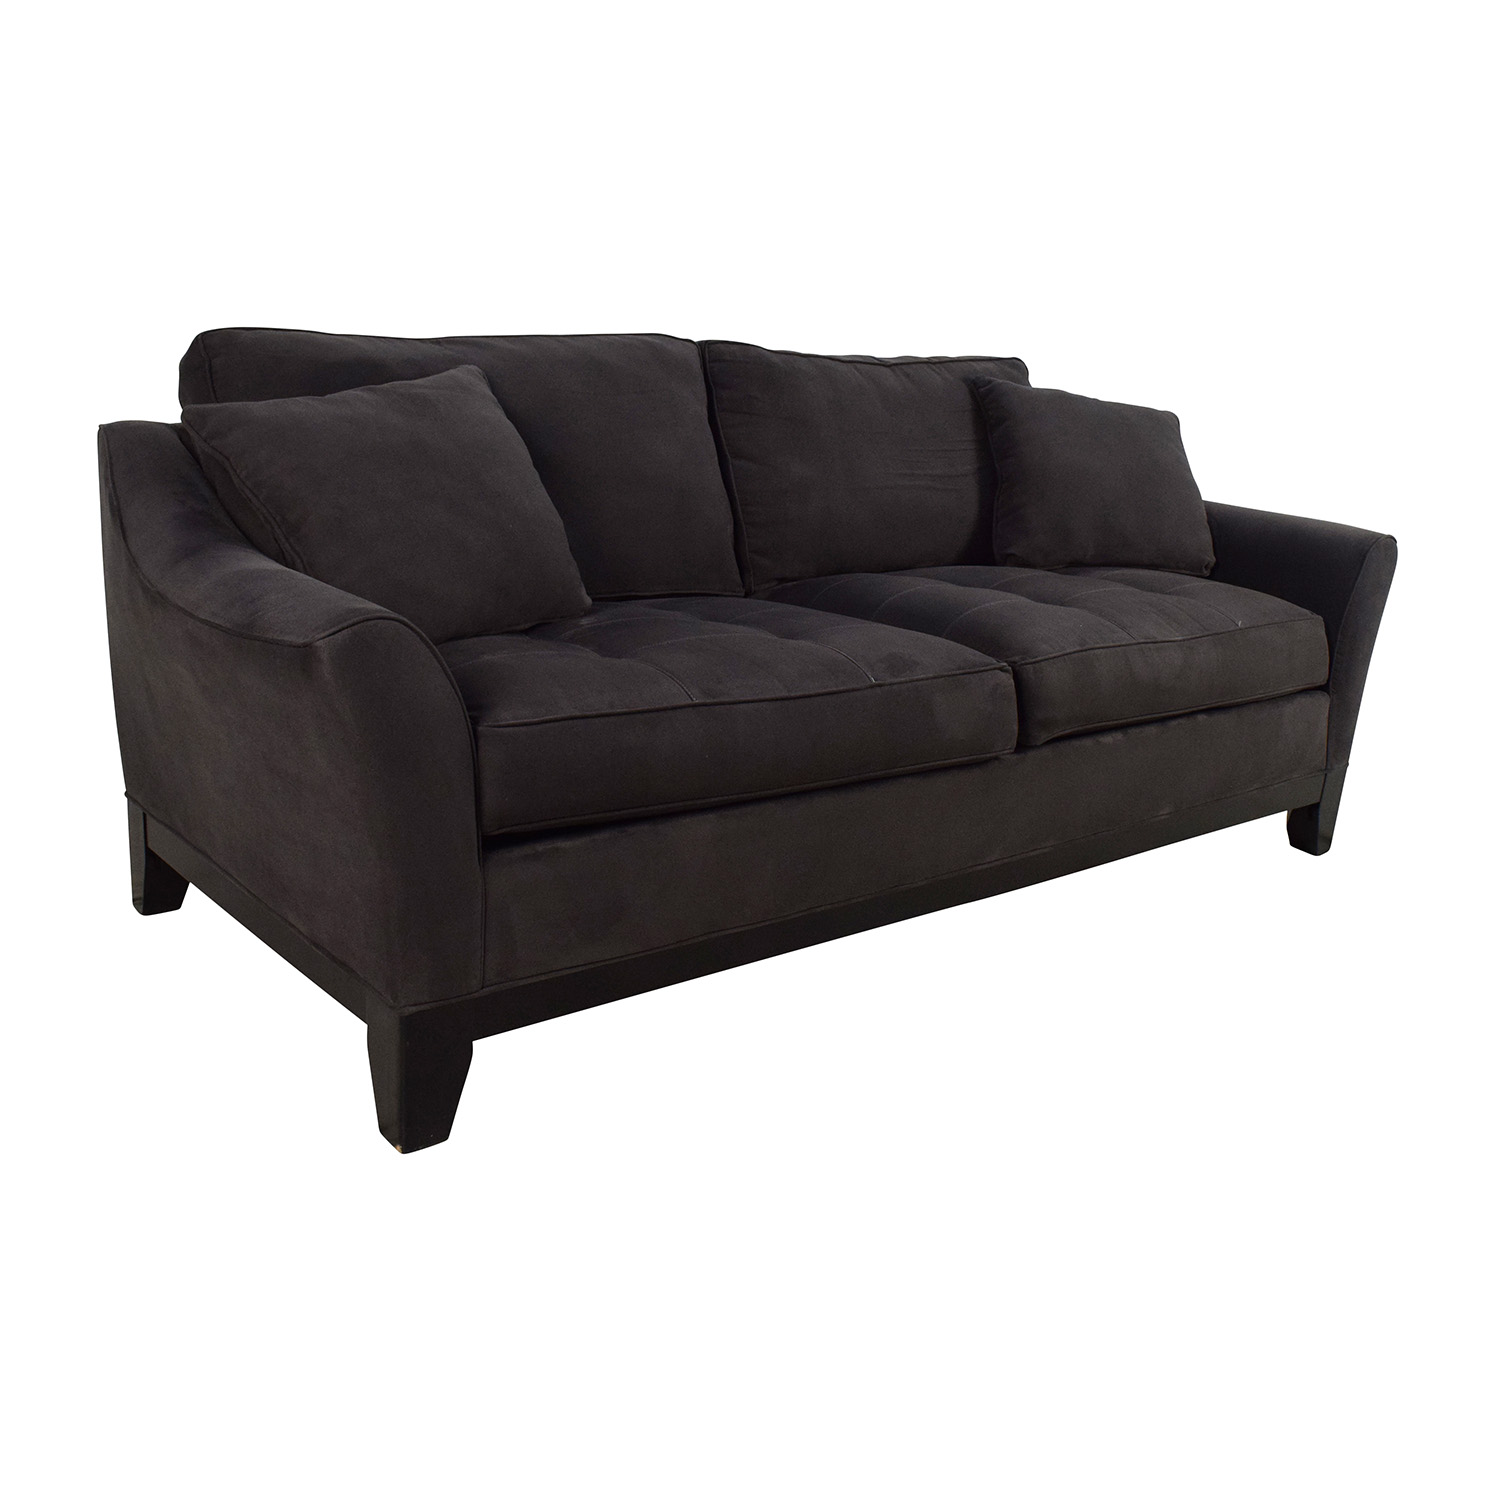 raymour and flanigan microfiber sofa. Black Bedroom Furniture Sets. Home Design Ideas